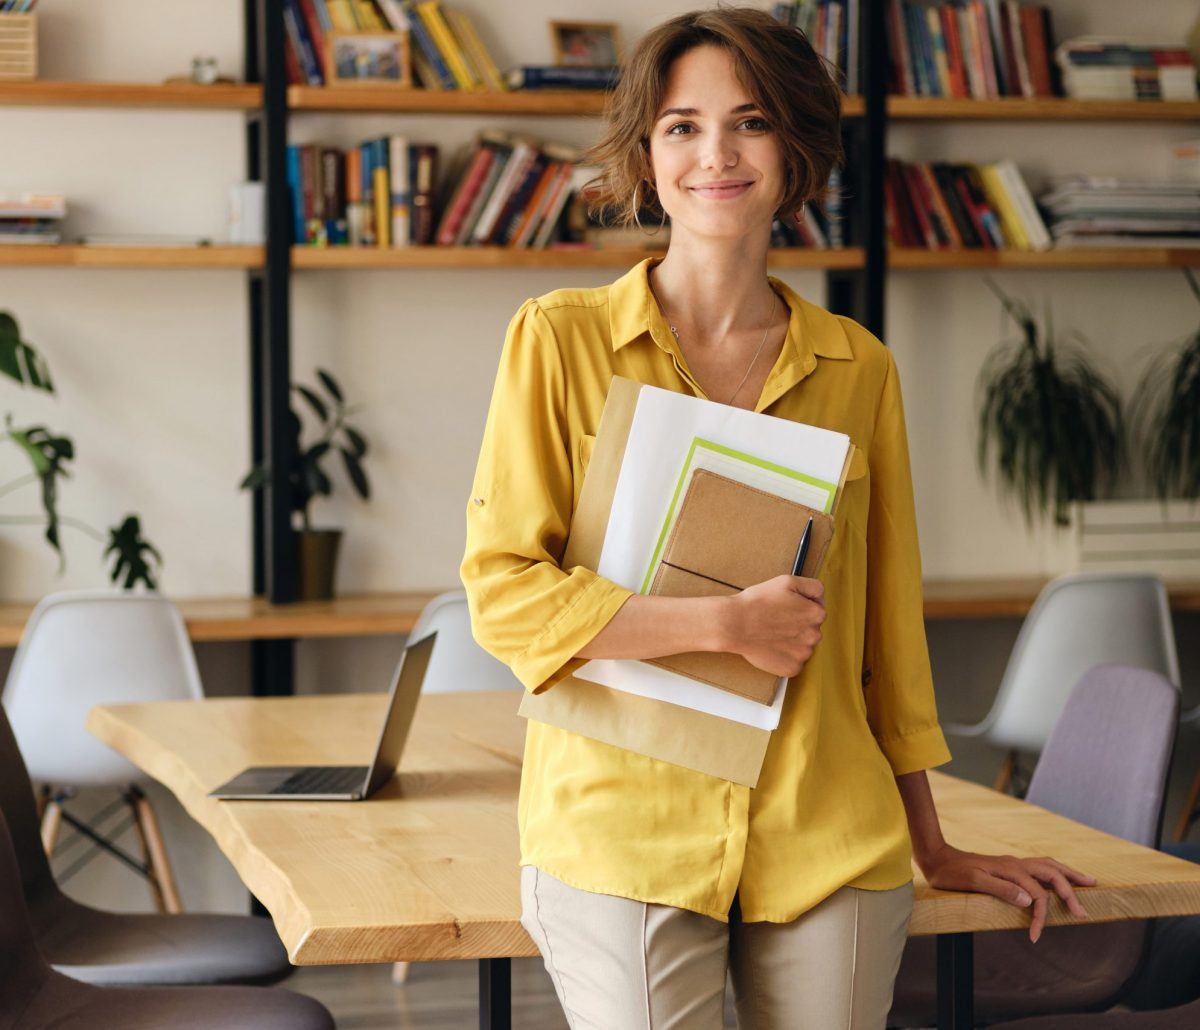 Young smiling woman in yellow shirt leaning on desk with notepad and papers in hand happily looking in camera in modern office